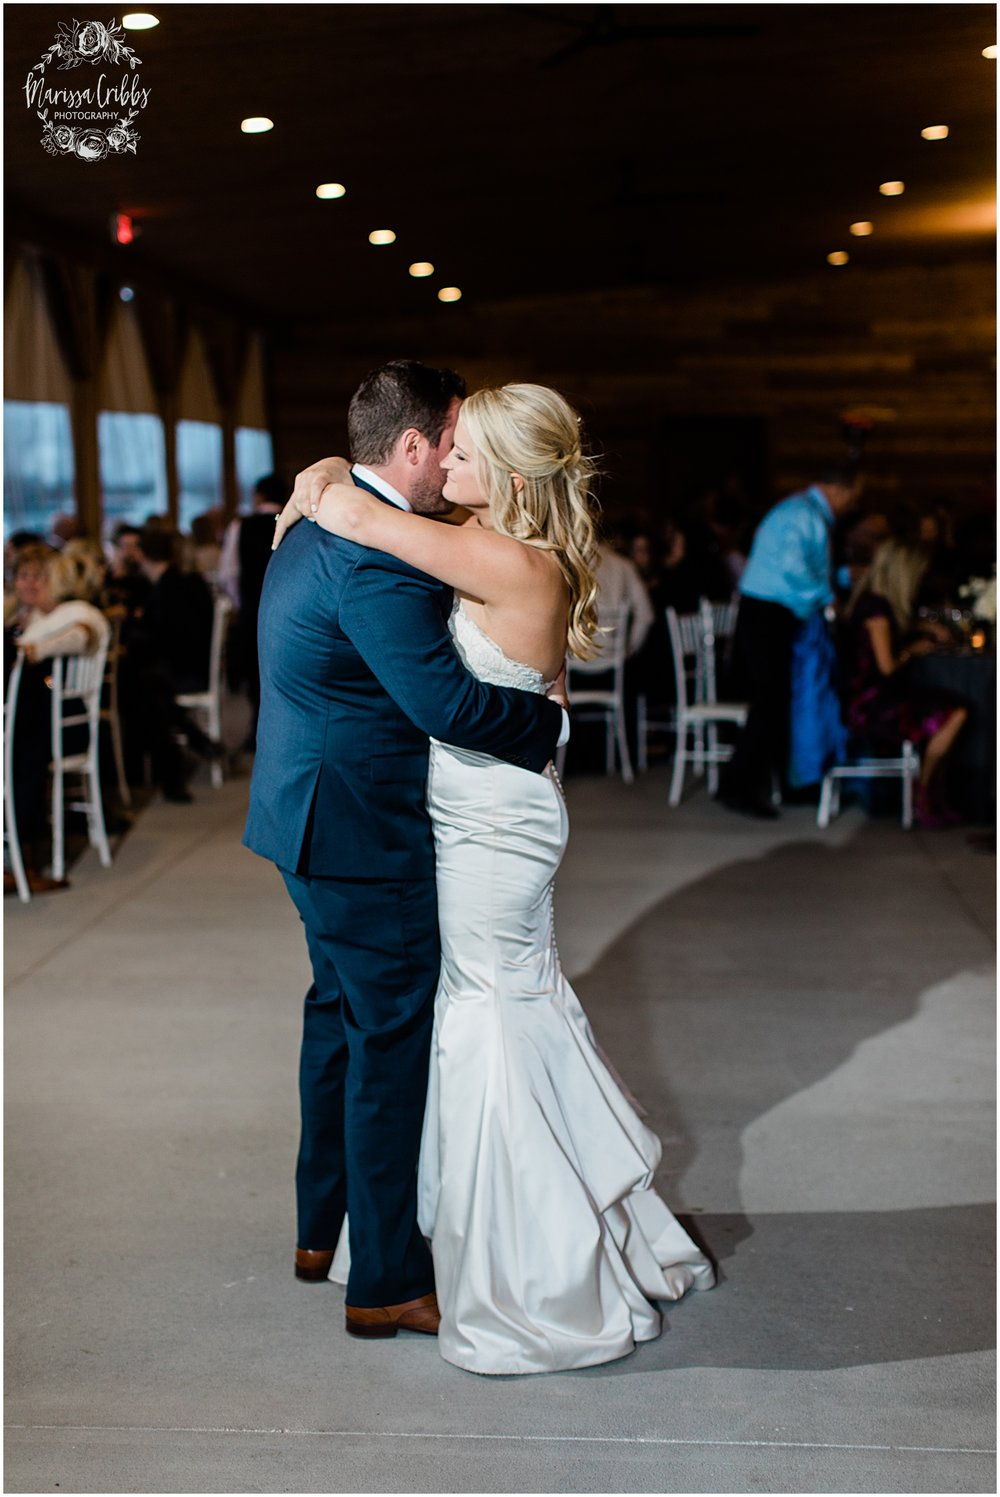 TILSON WEDDING | THE LEGACY AT GREEN HILLS | SIMPLE ELEGANCE | MARISSA CRIBBS PHOTOGRAPHY_4765.jpg